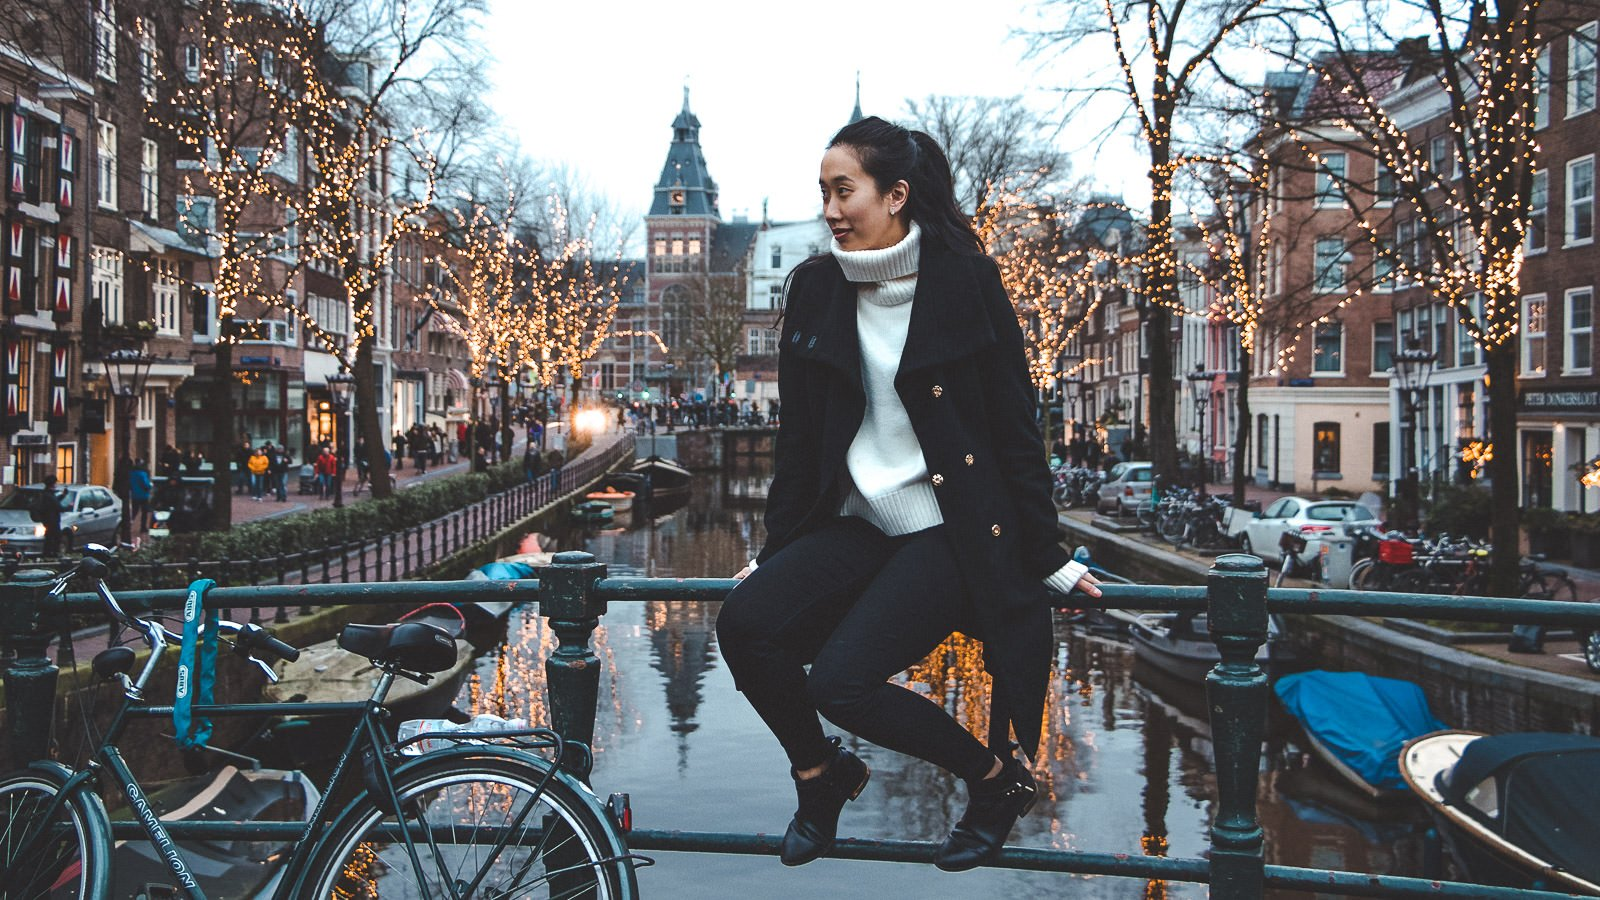 Amsterdam Instagram Spots | 16 Places Worth Visiting